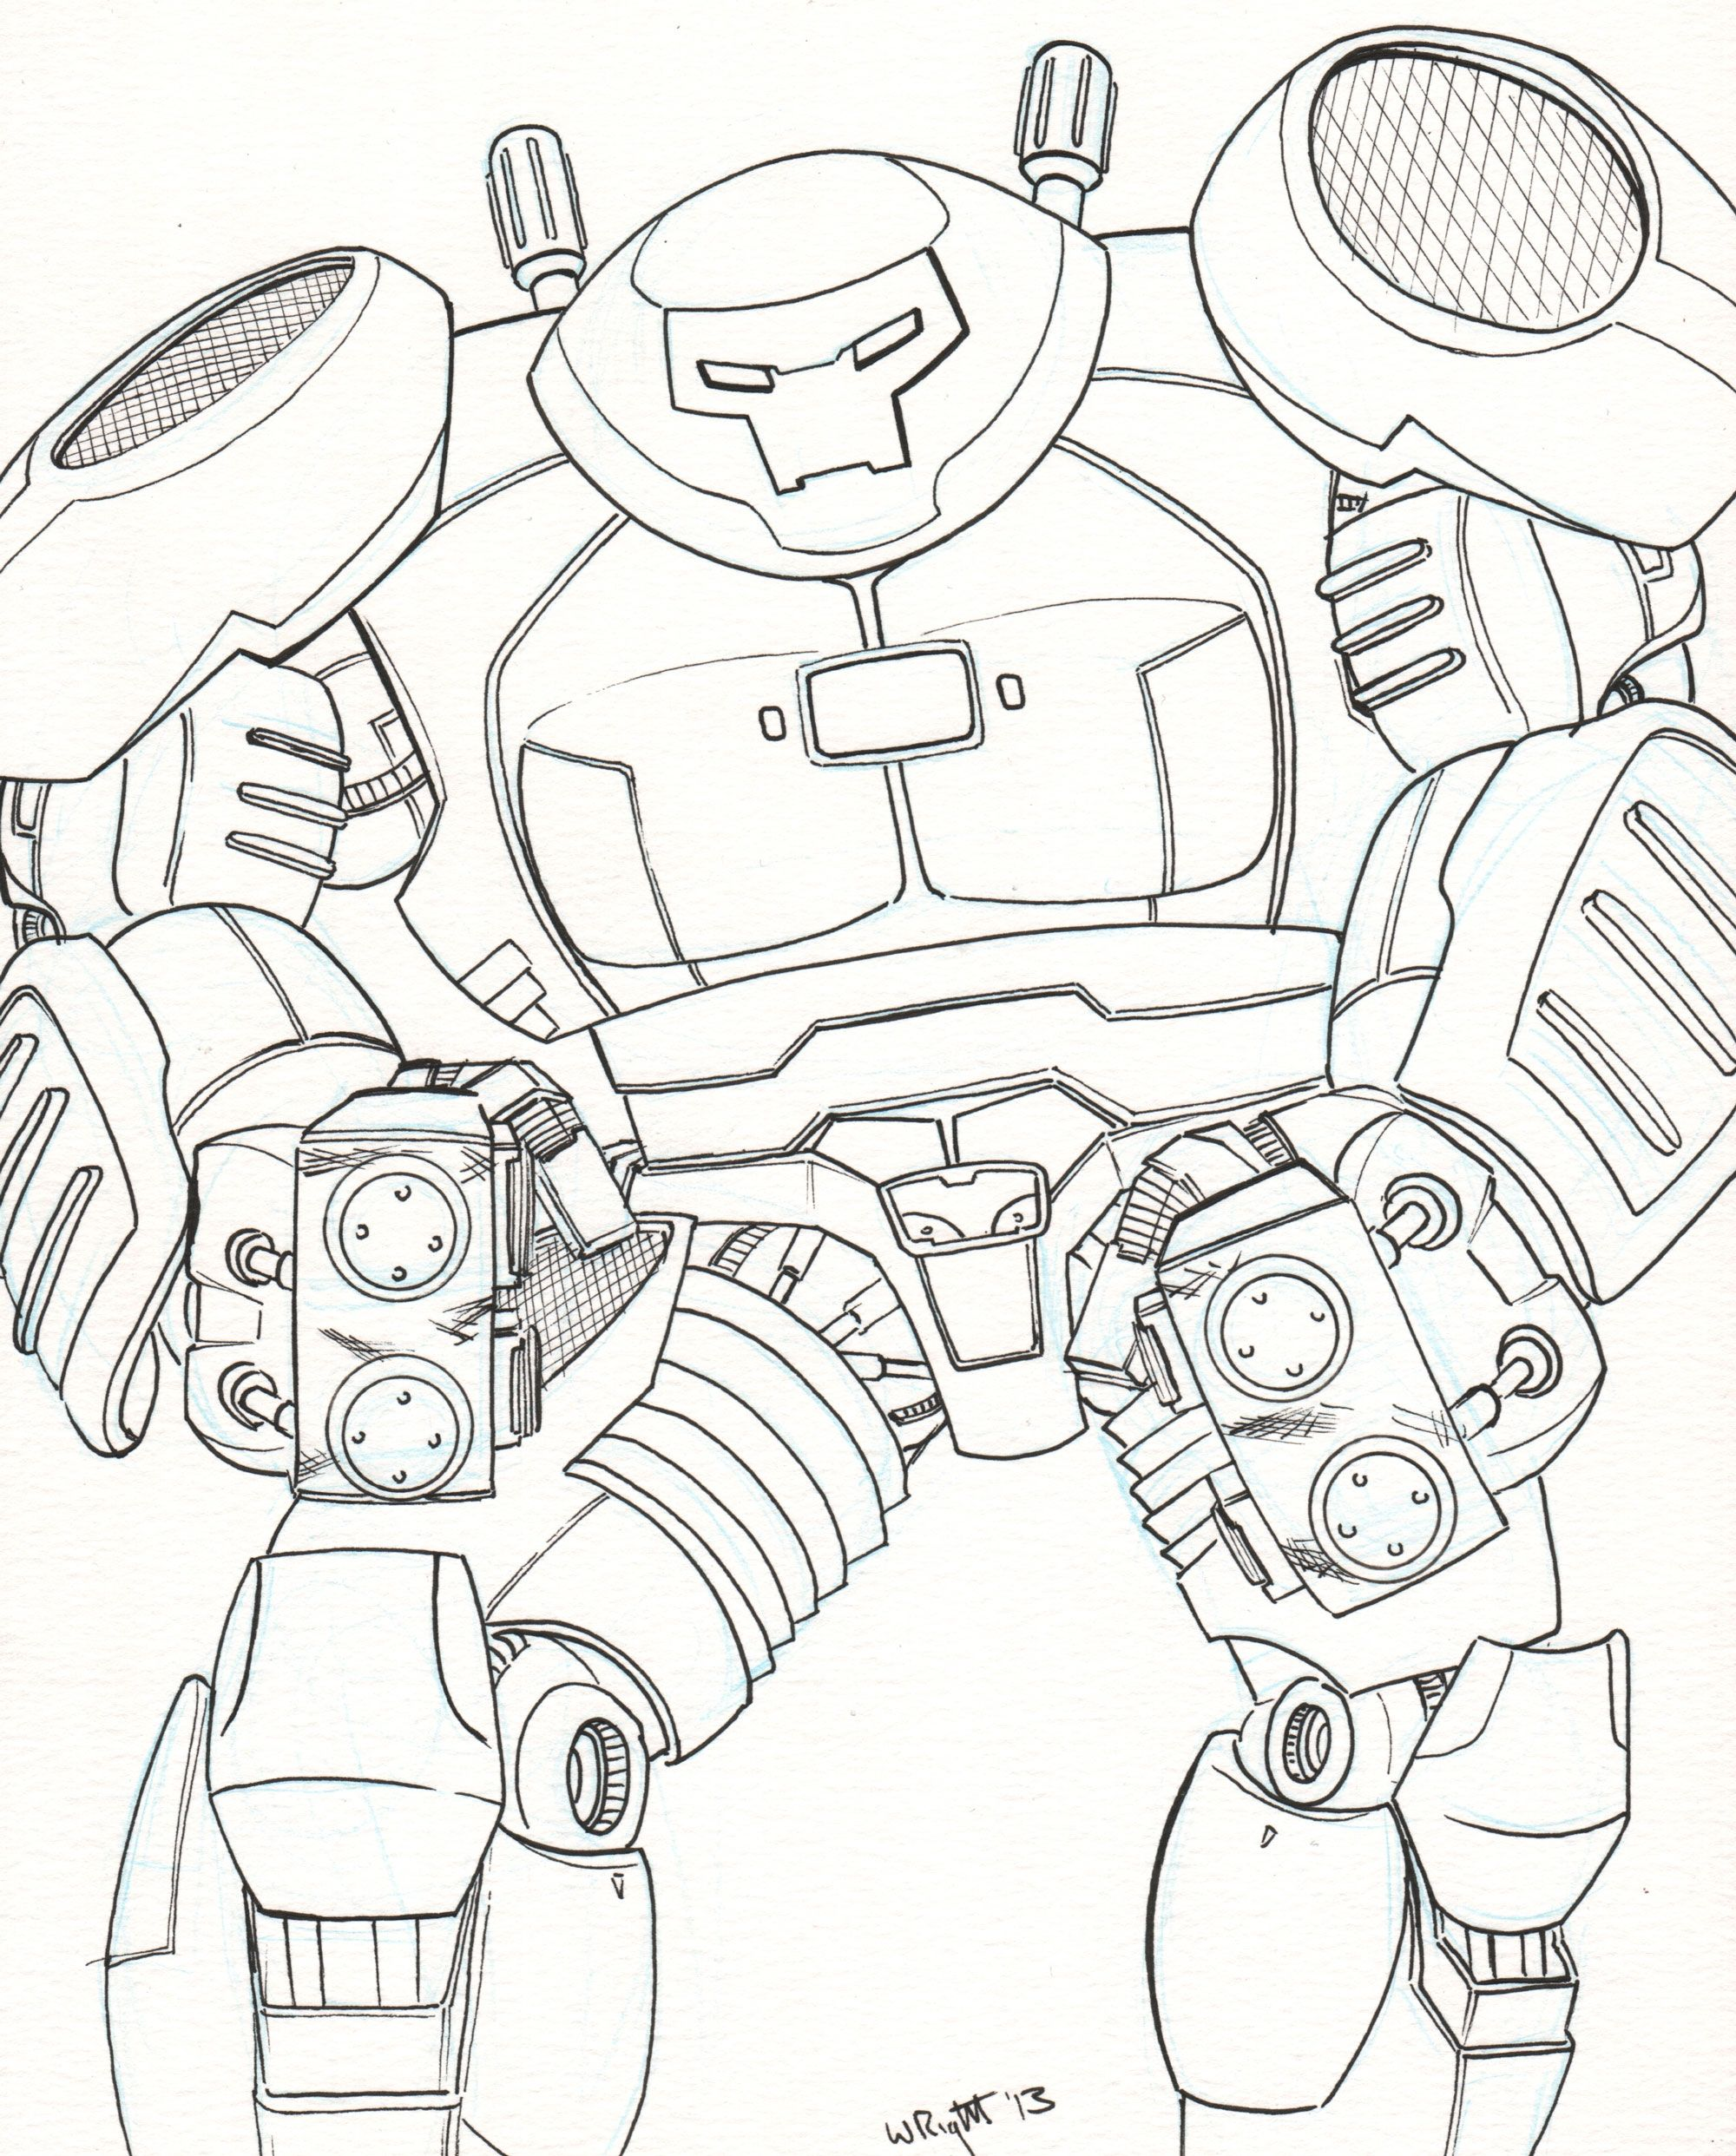 Hulkbuster Coloring Pages Gallery Free Books Avengers Coloring Pages Superhero Coloring Pages Avengers Coloring